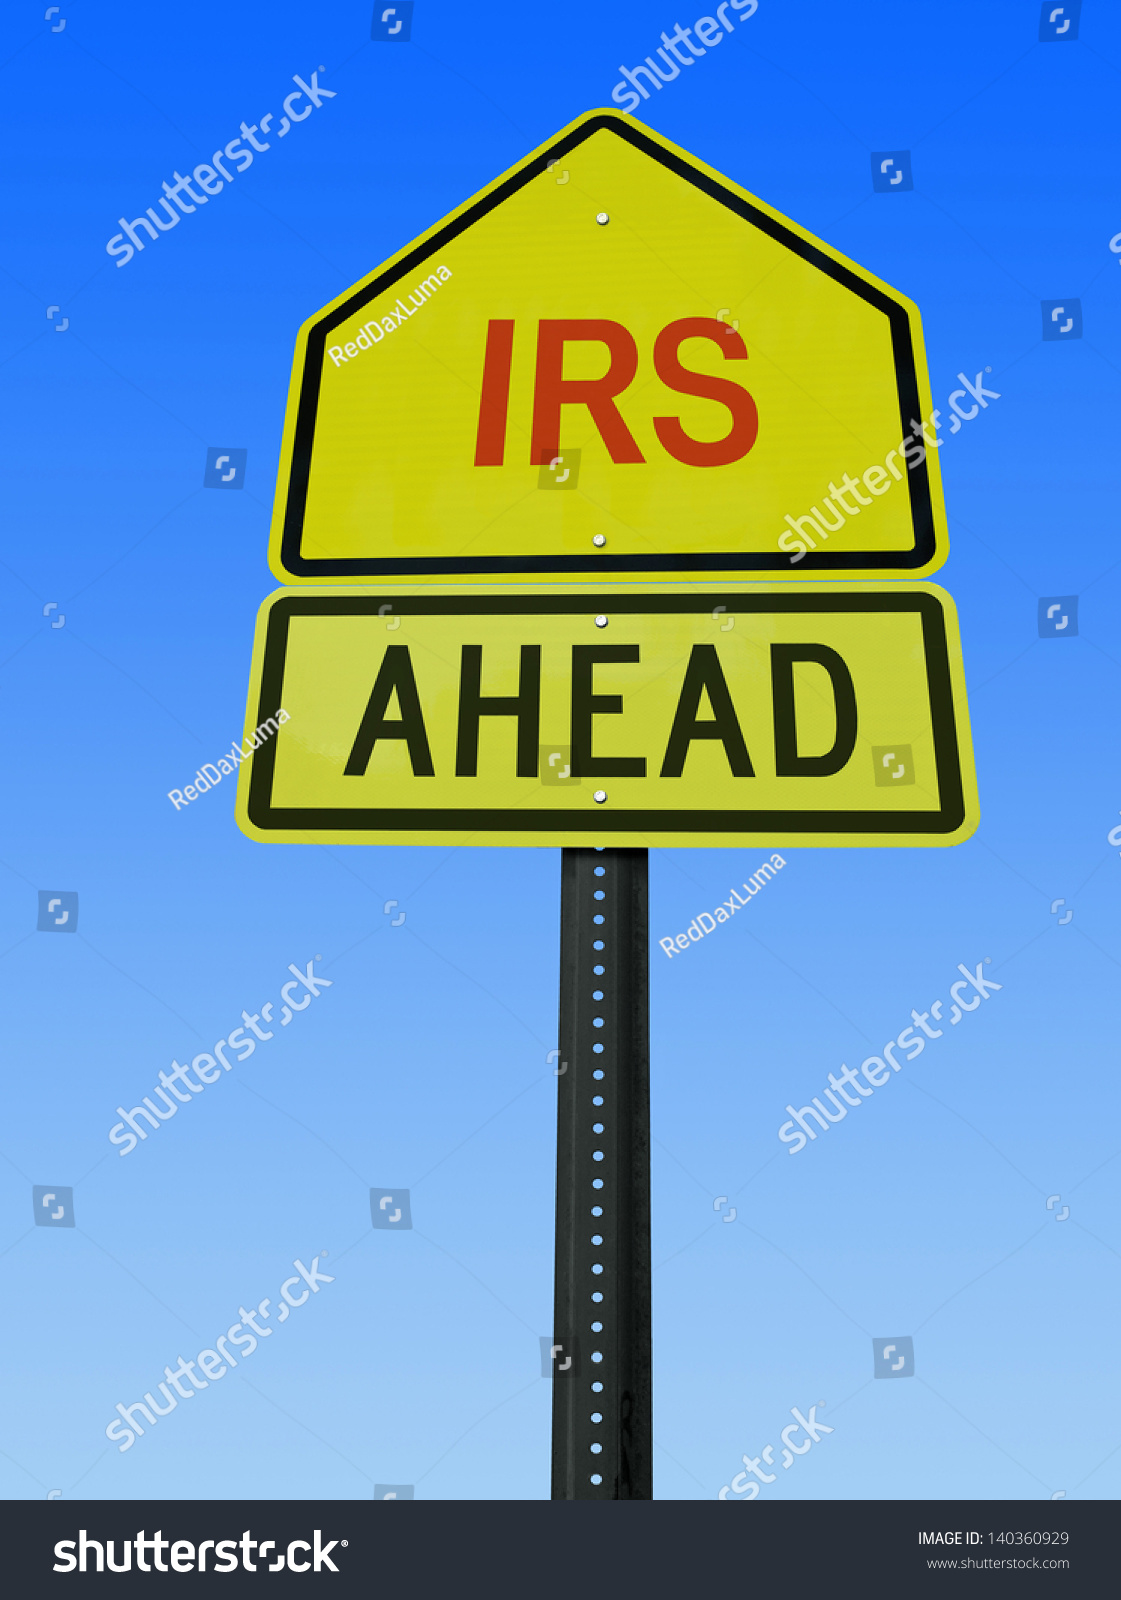 Are options trades reported to irs 2017